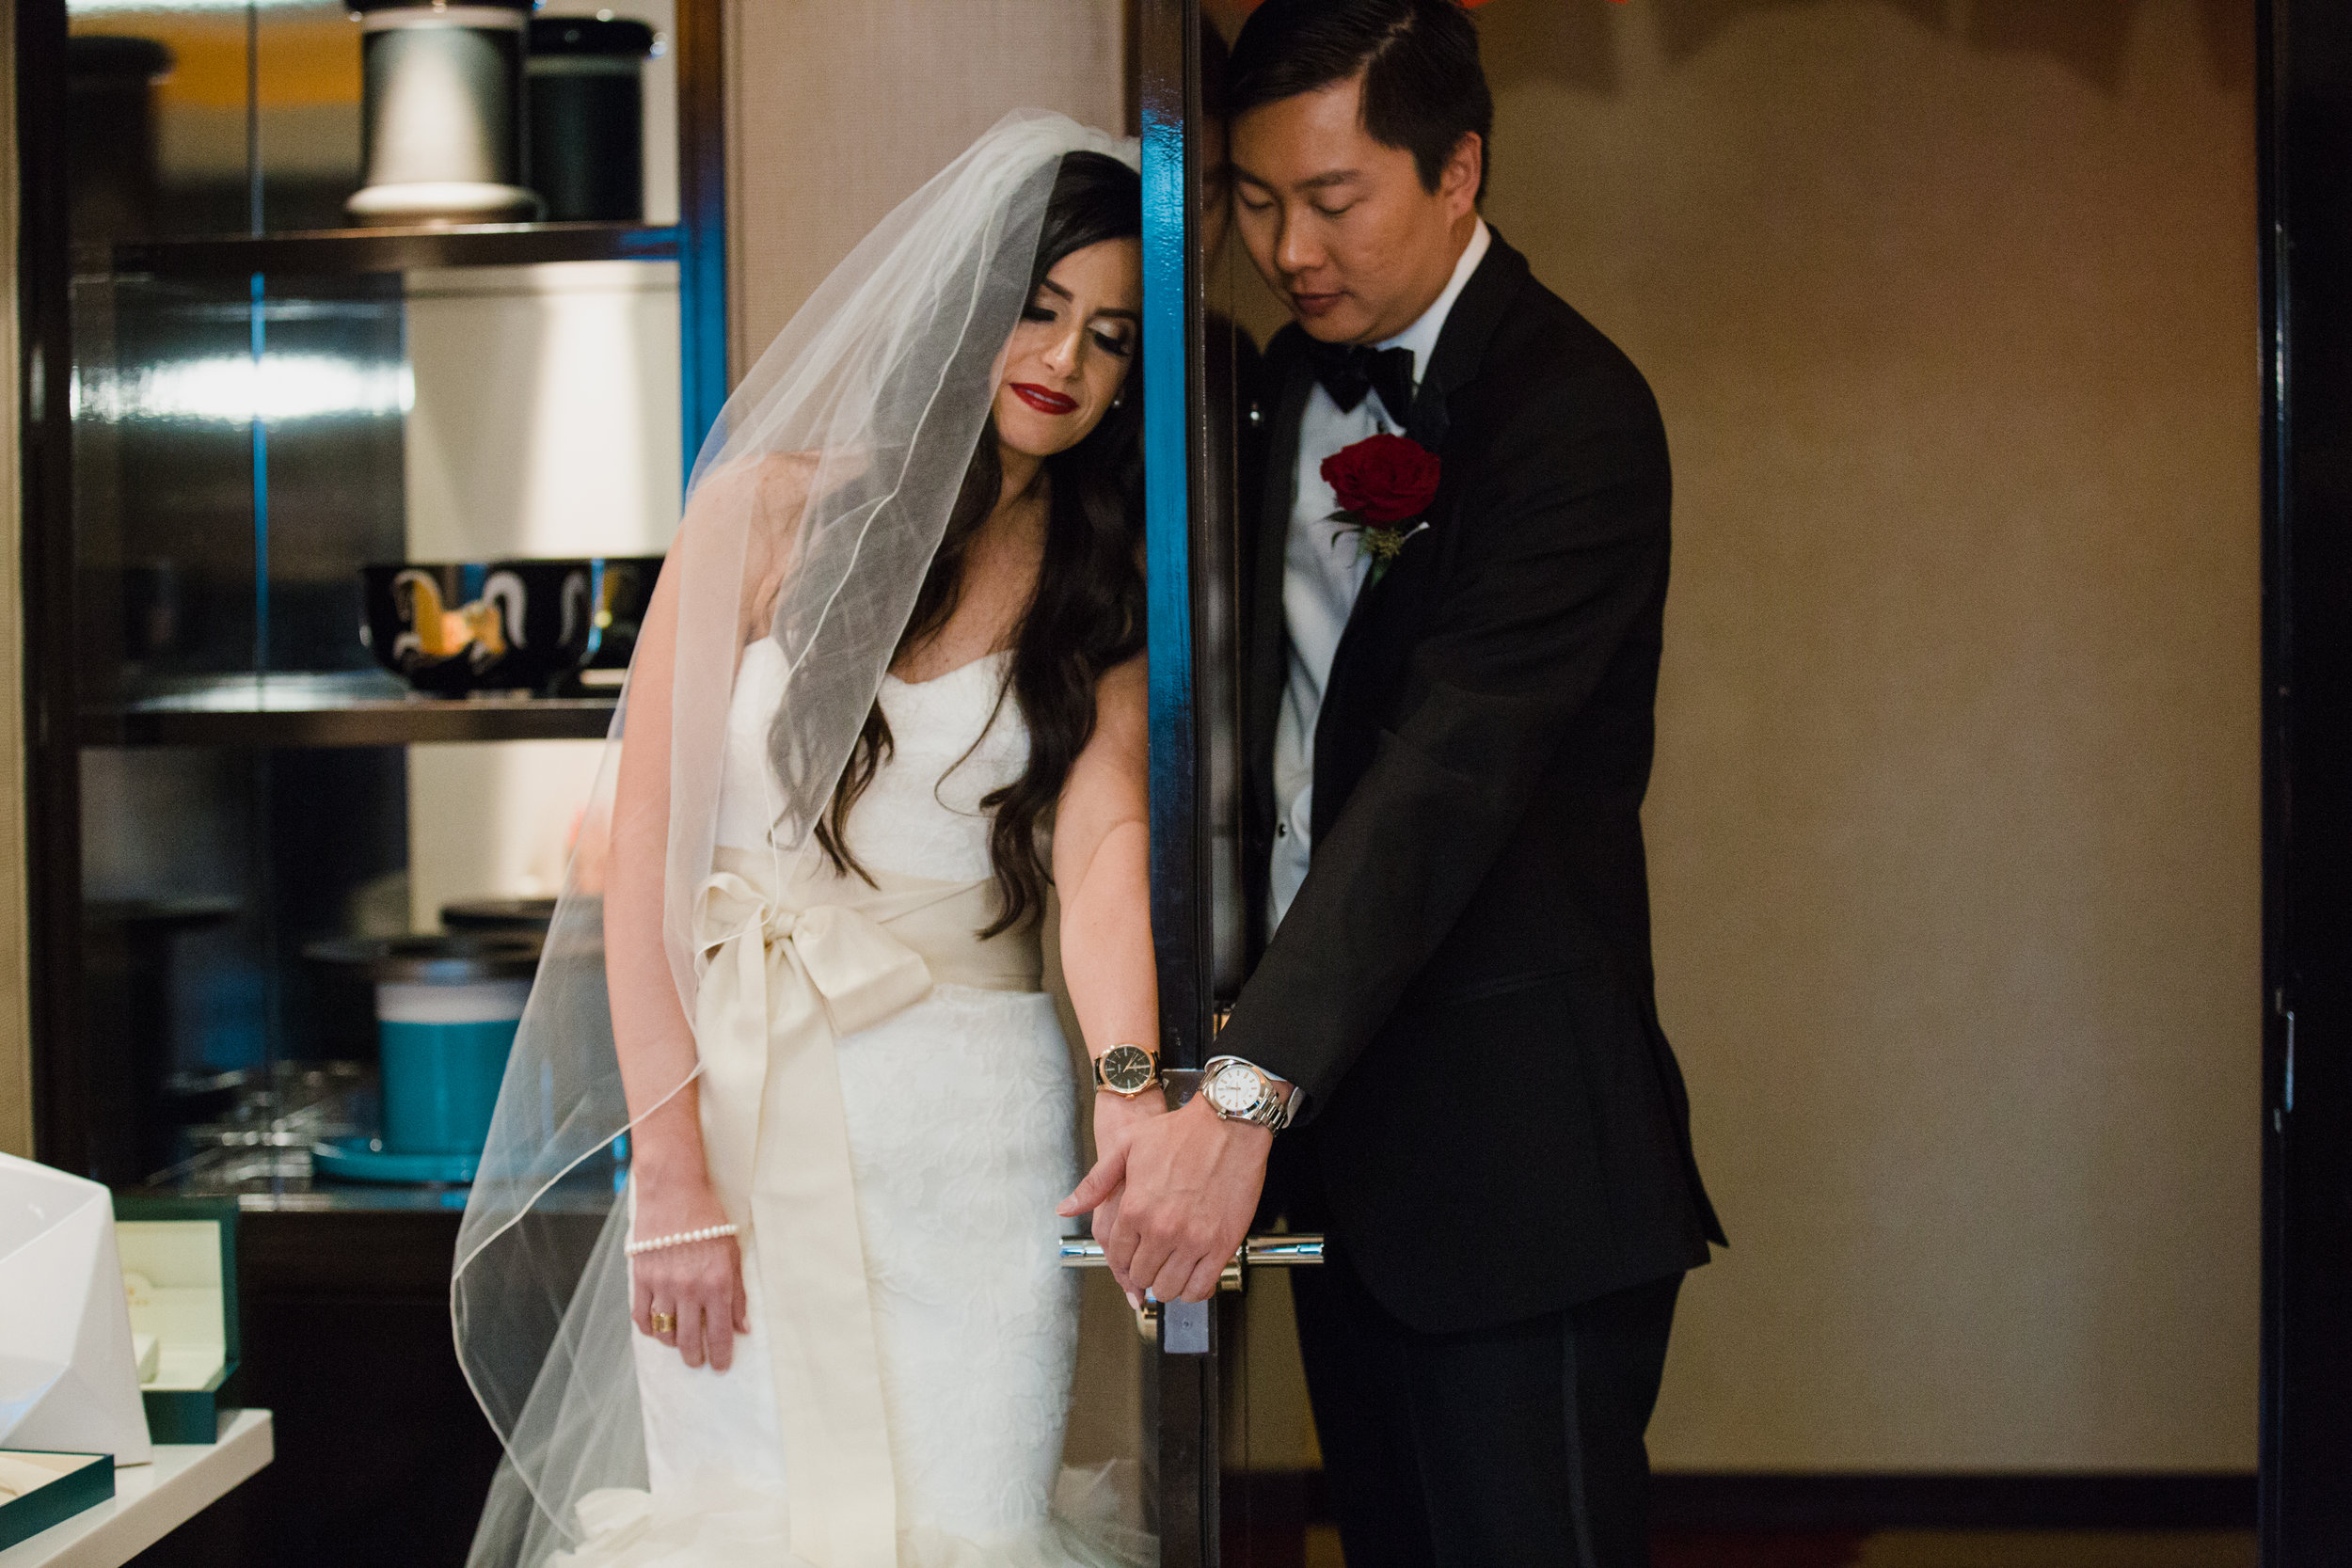 First touch wearing rolex watches.Luxury wedding at the Mandarin Oriental with a color scheme of white, blush, and pops of wine red produced by Las Vegas Wedding Planner Andrea Eppolito with photos by Stephen Salazar Photography.